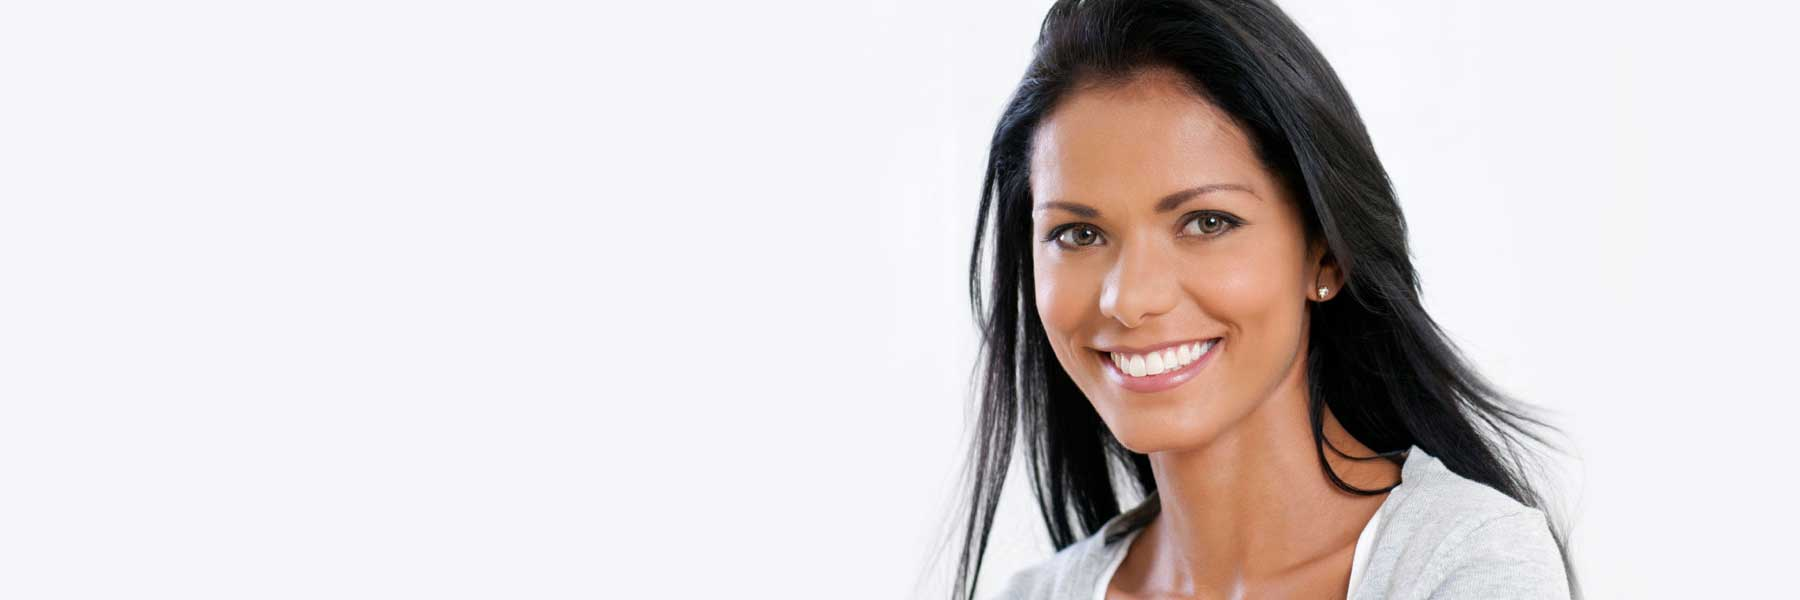 Invisalign Clear Braces banner image